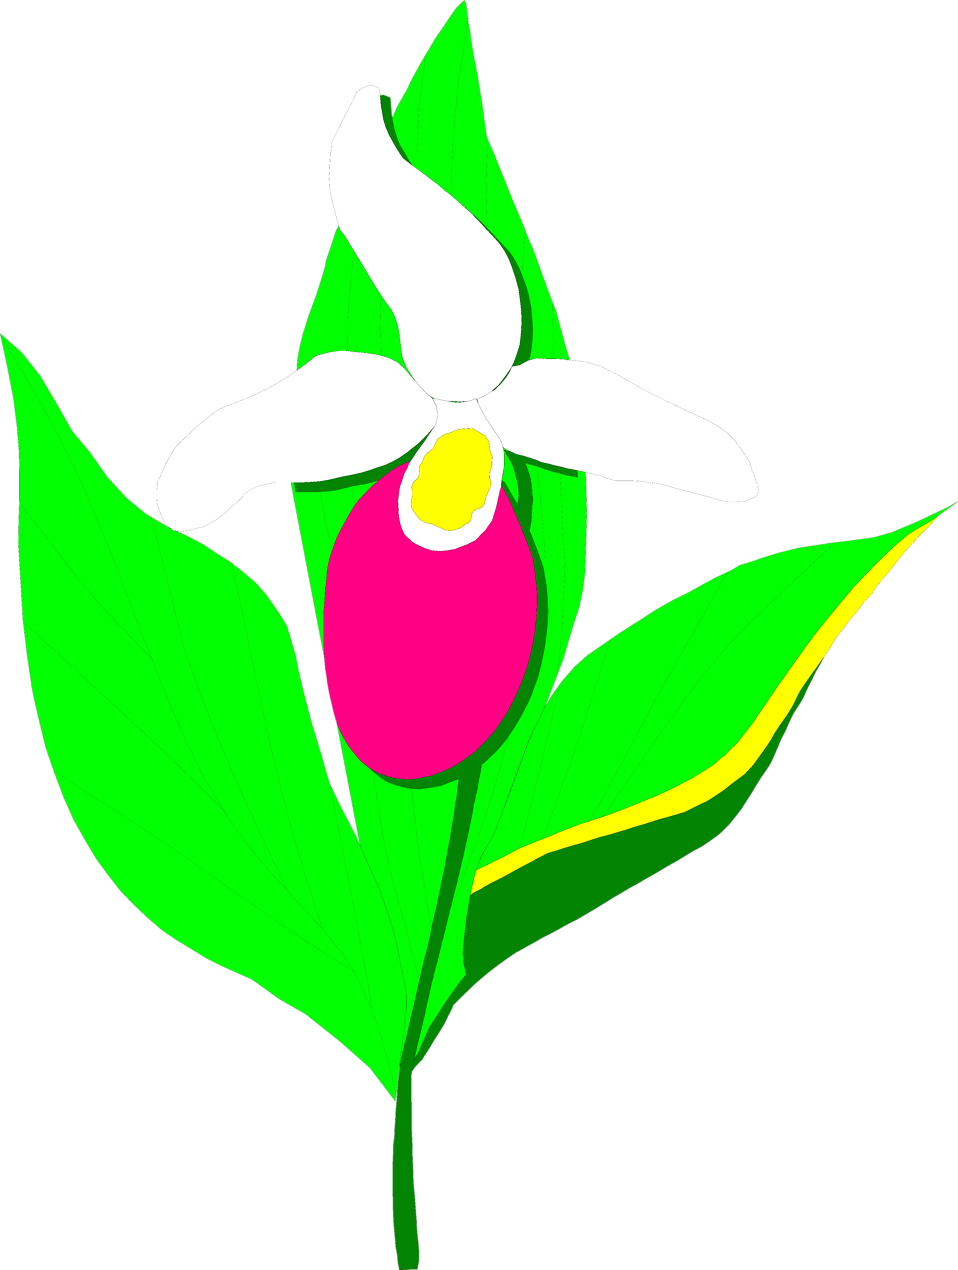 Lady clipart flower. Orchid free stock photo